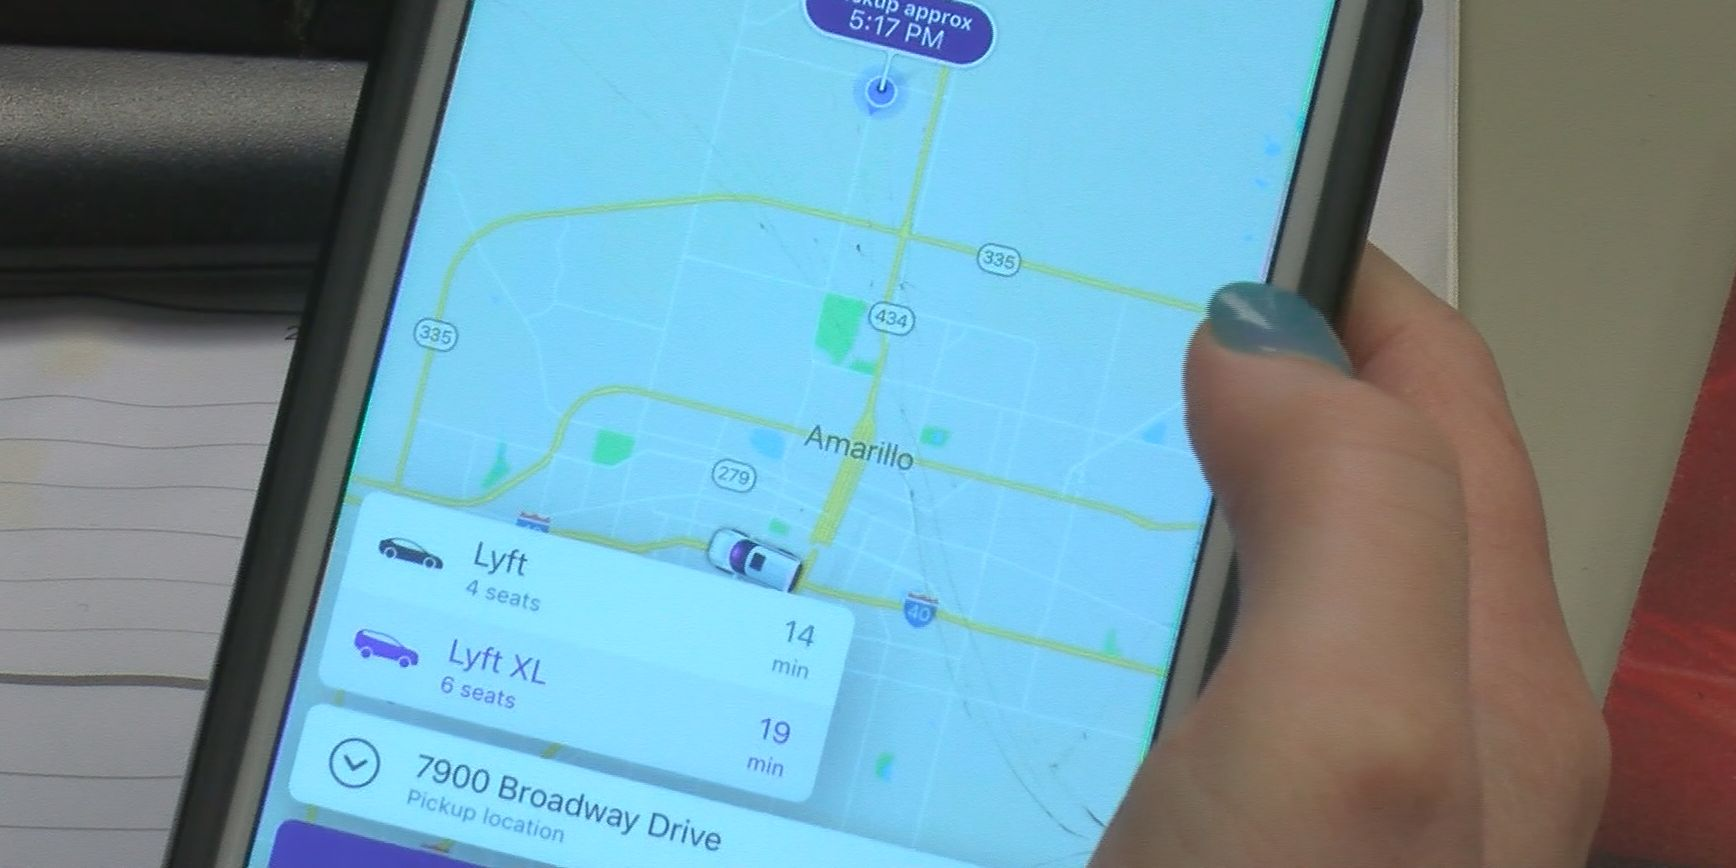 ChemoCars solves patient transportation issues in Amarillo